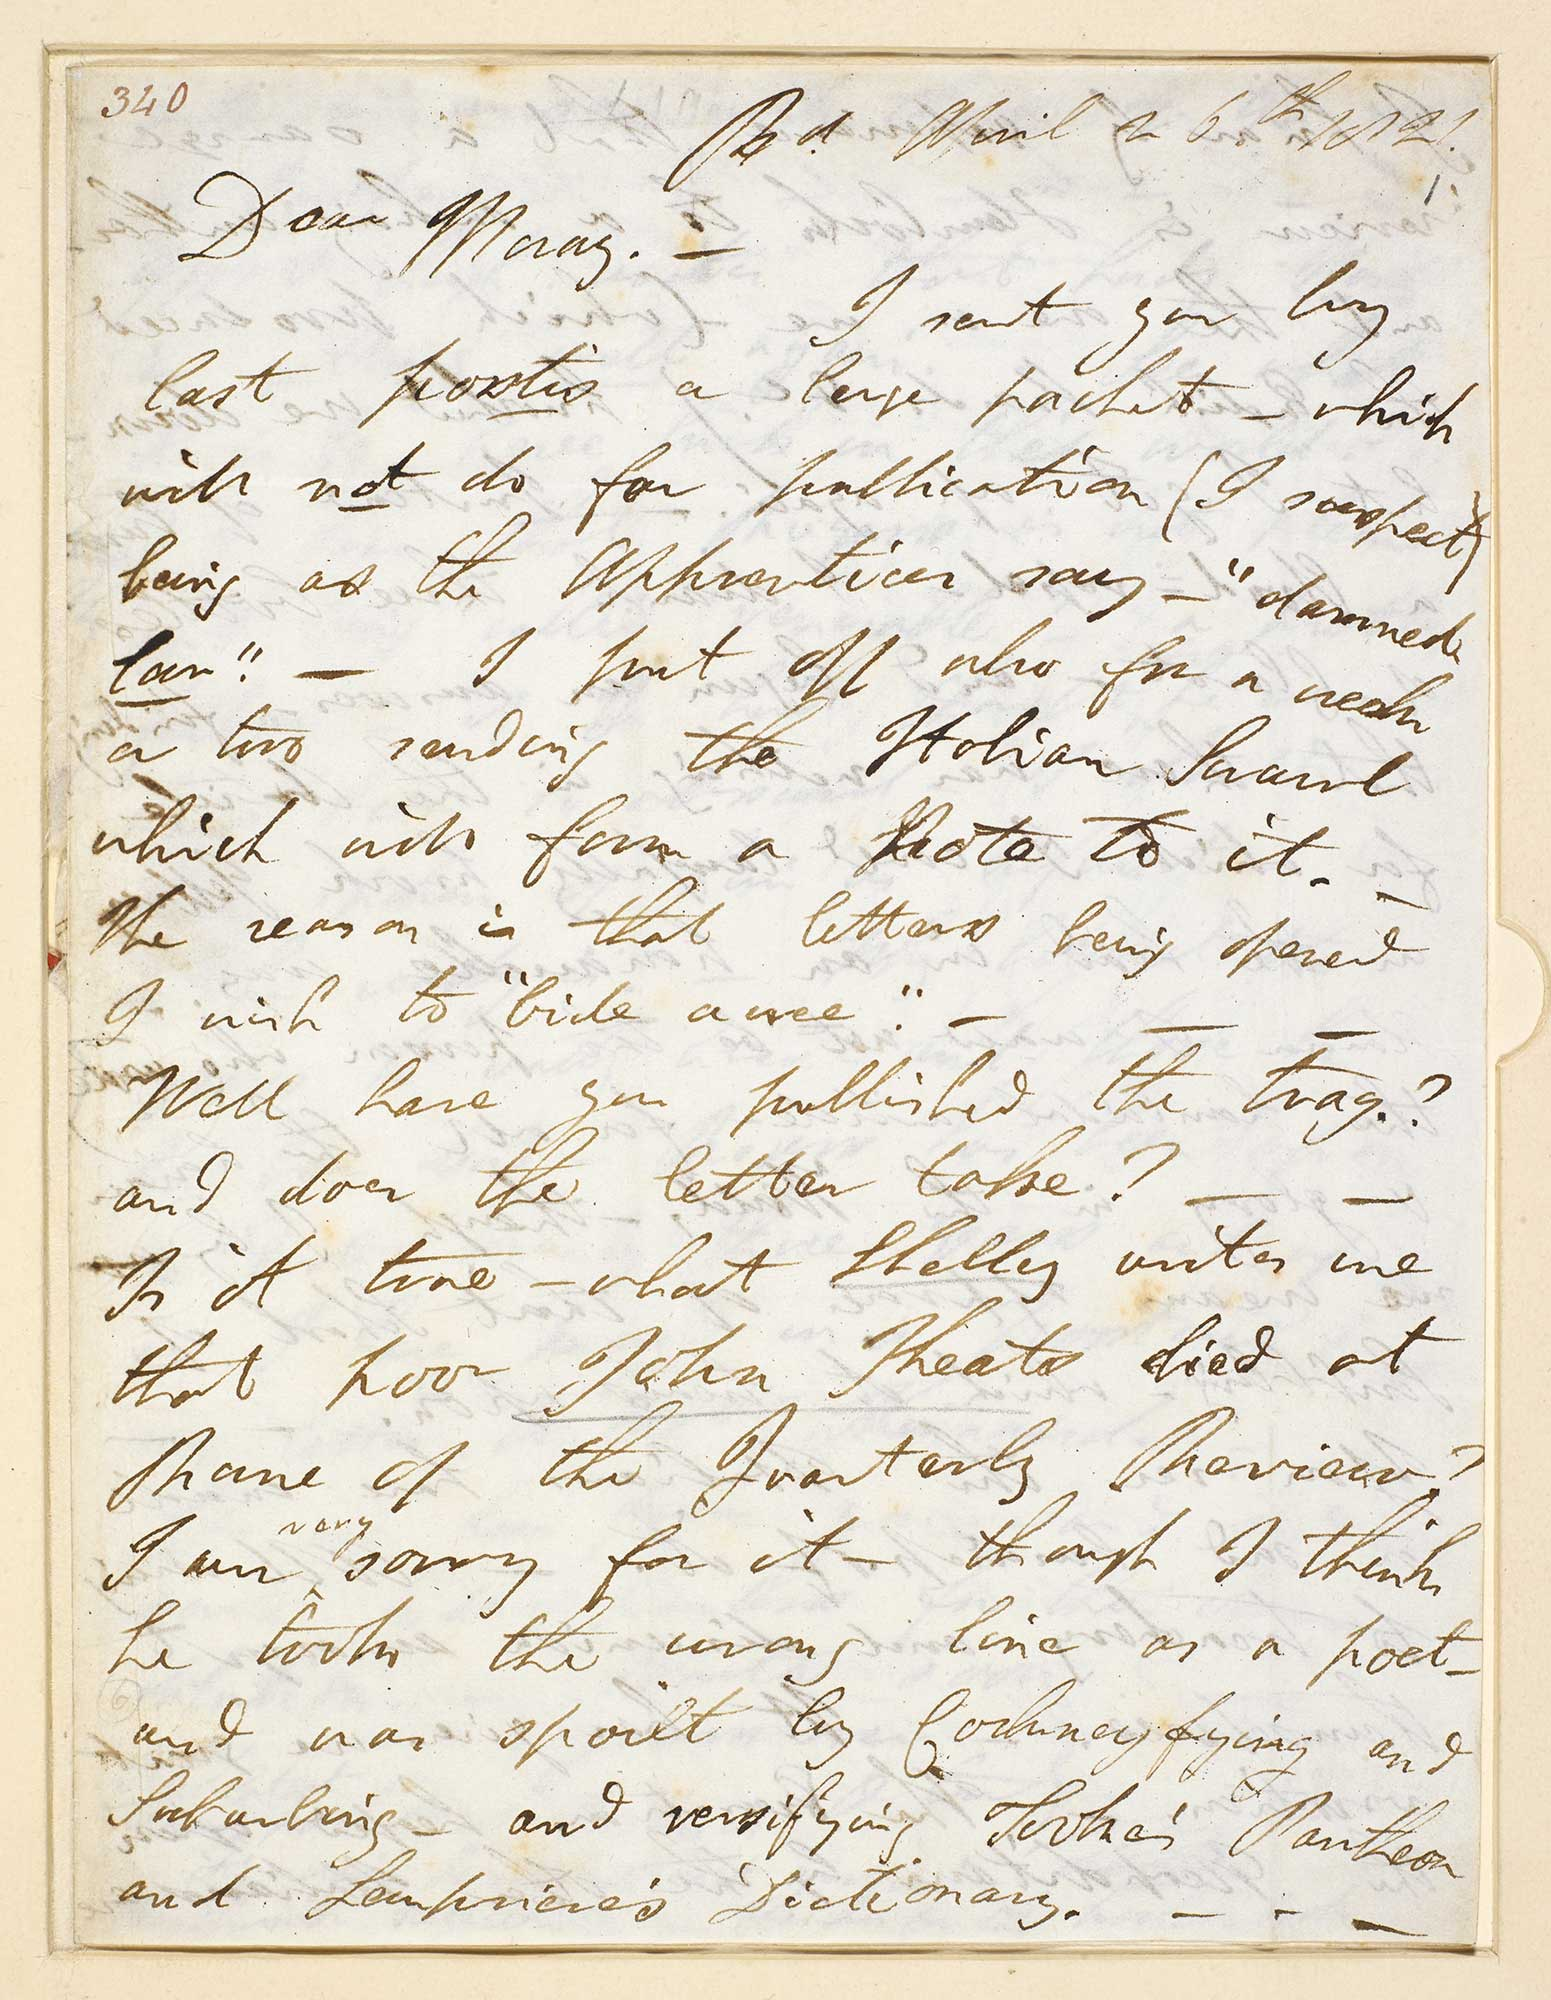 Letter from Lord Byron to John Murray about the death of Keats, 1821